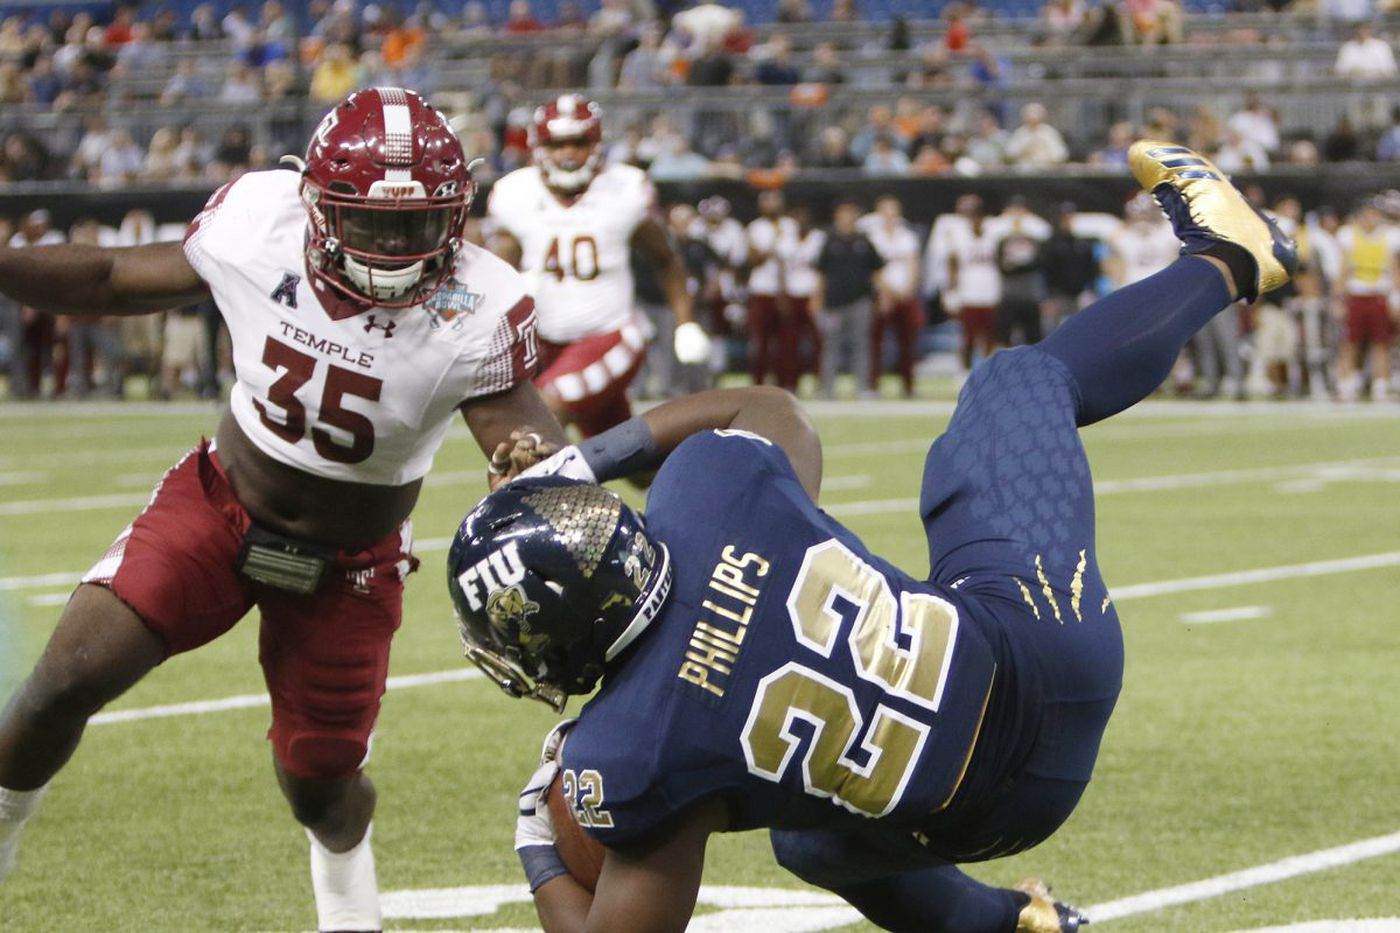 Temple's William Kwenkeu becomes U.S. citizen just before helping Owls win Gasparilla Bowl